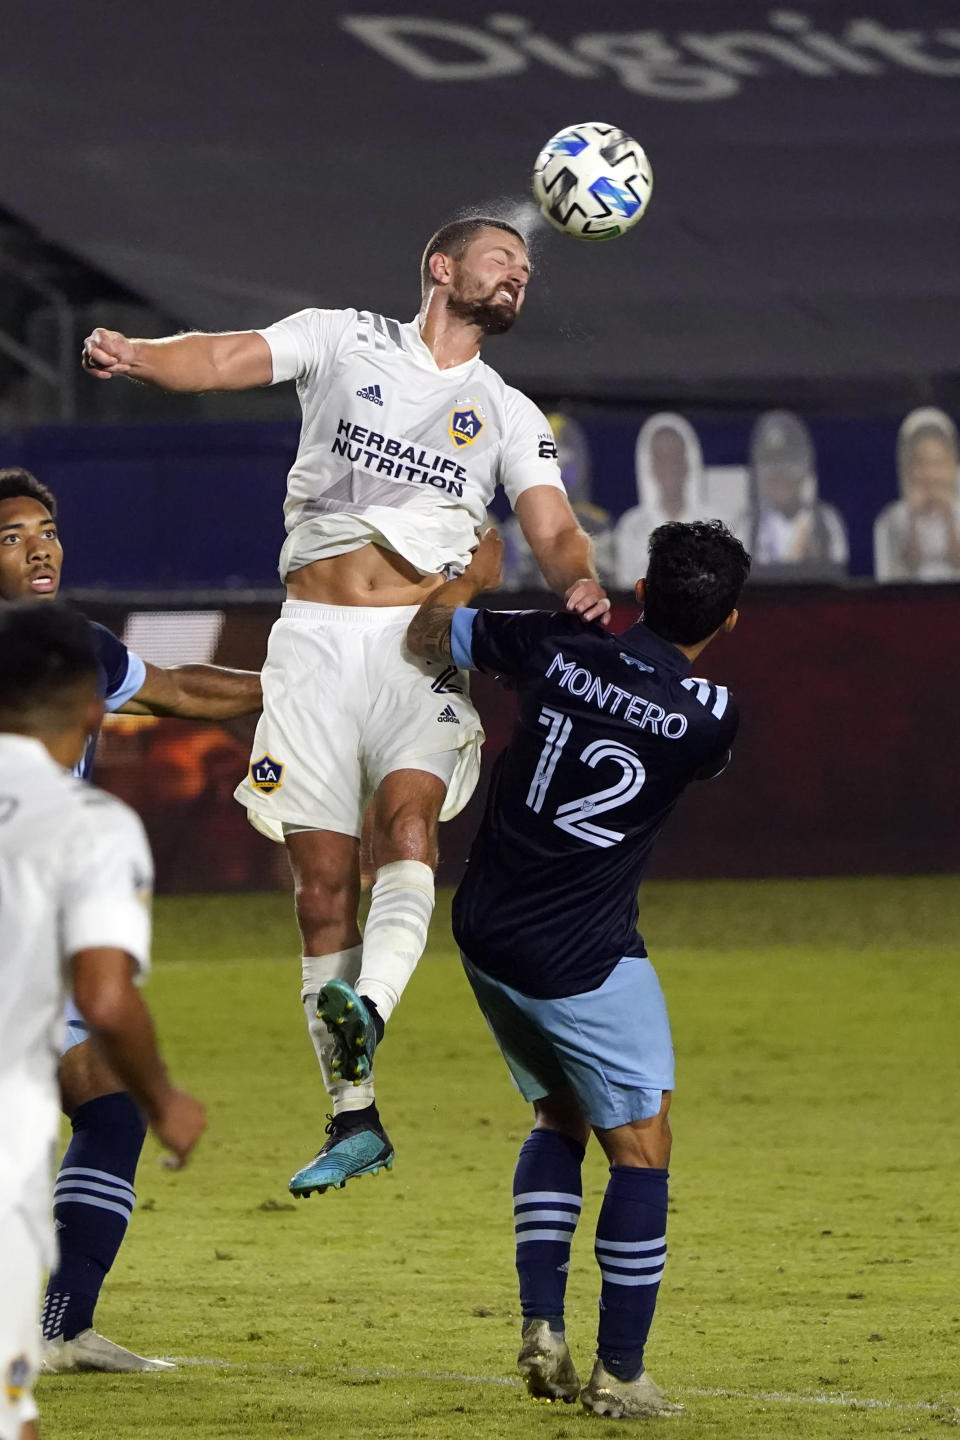 Los Angeles Galaxy's Perry Kitchen, top, heads the ball over Vancouver Whitecaps's Fredy Montero (12) during the second half of an MLS soccer match, Sunday, Oct. 18, 2020, in Carson, Calif. (AP Photo/Marcio Jose Sanchez)